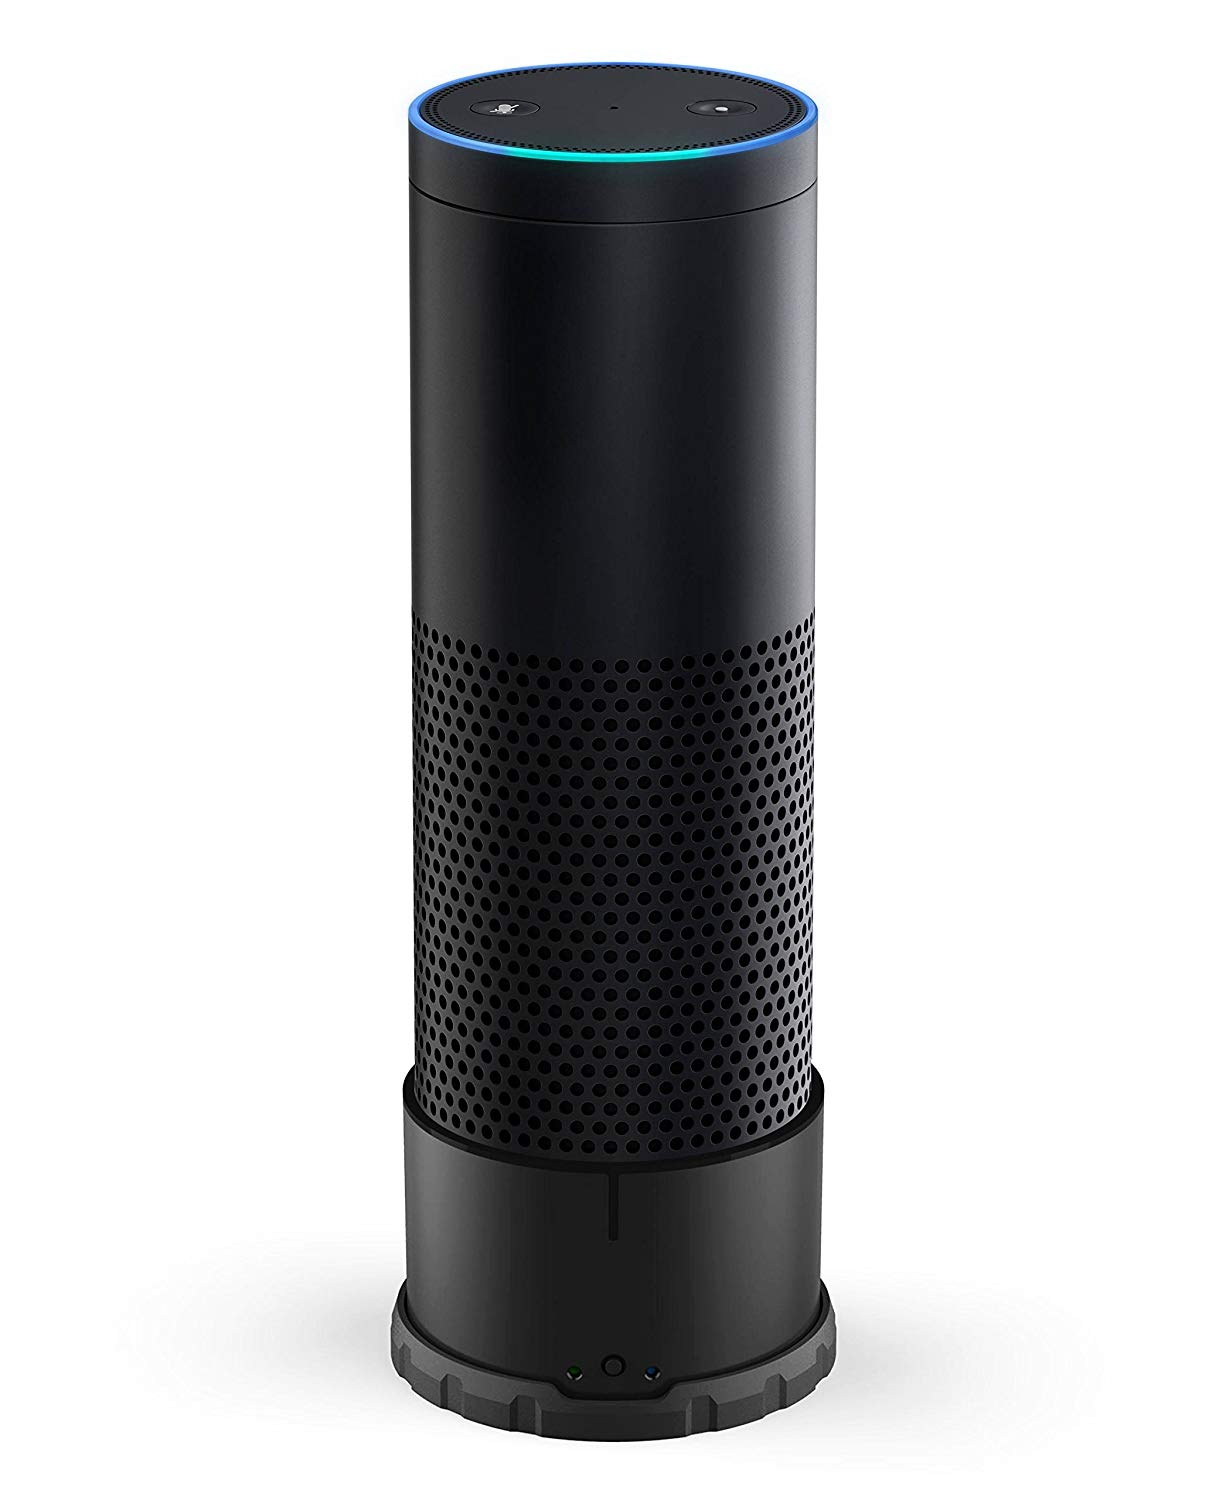 Prime Amazon Com Portable Battery Base For Echo Use Echo Anywhere Not Wiring Cloud Waroletkolfr09Org